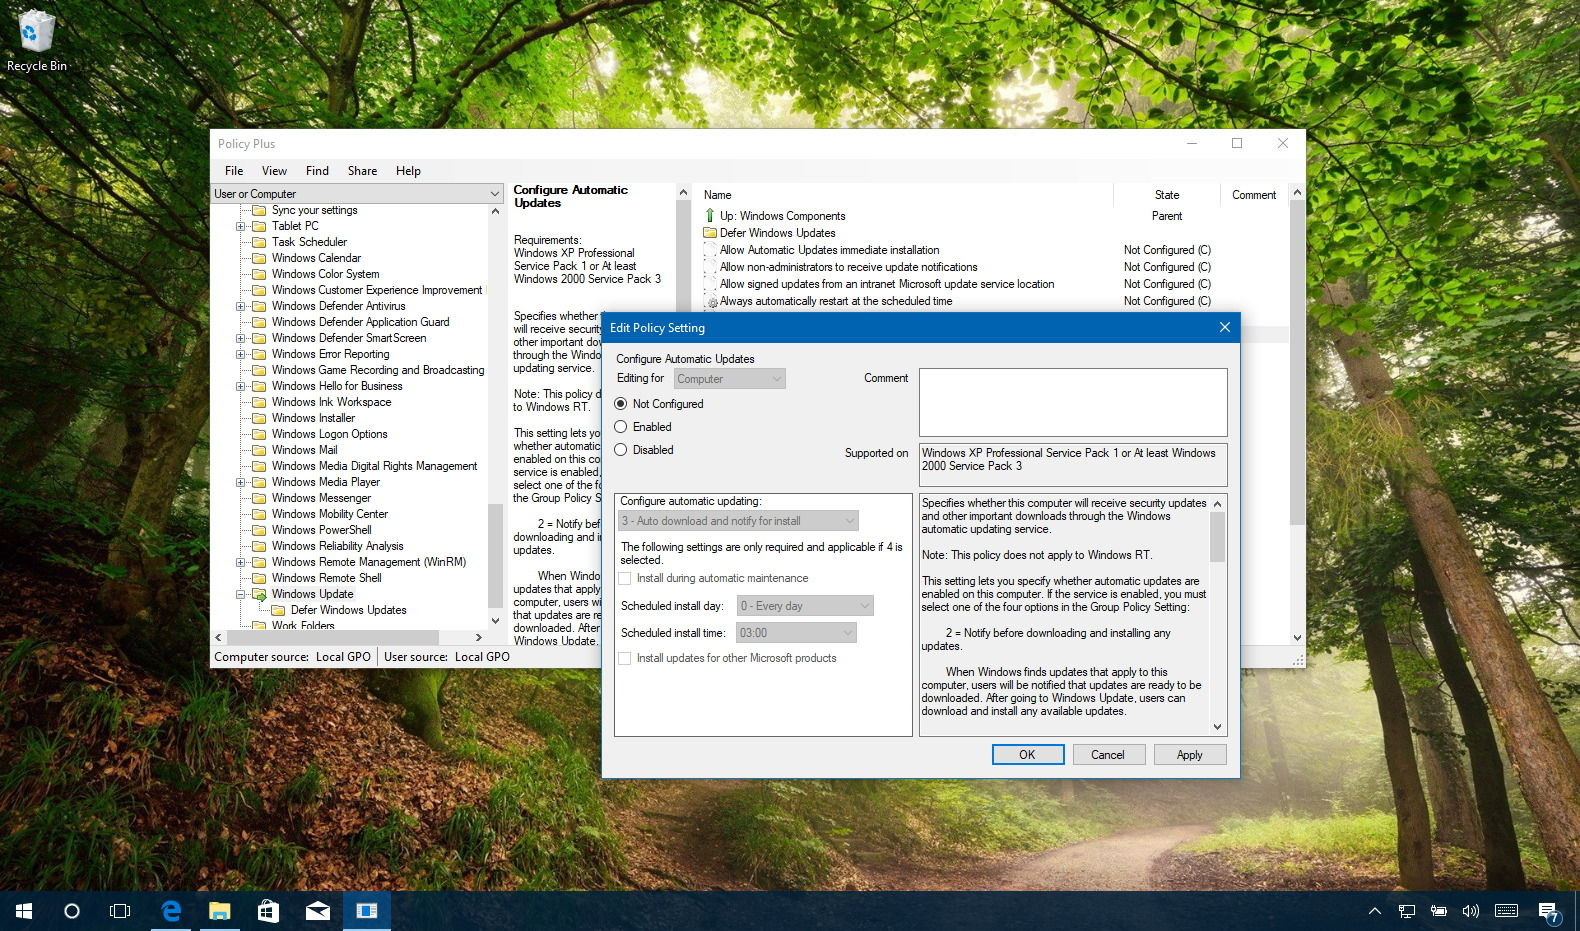 Policy Plus, Group Policy editor for Windows 10 Home